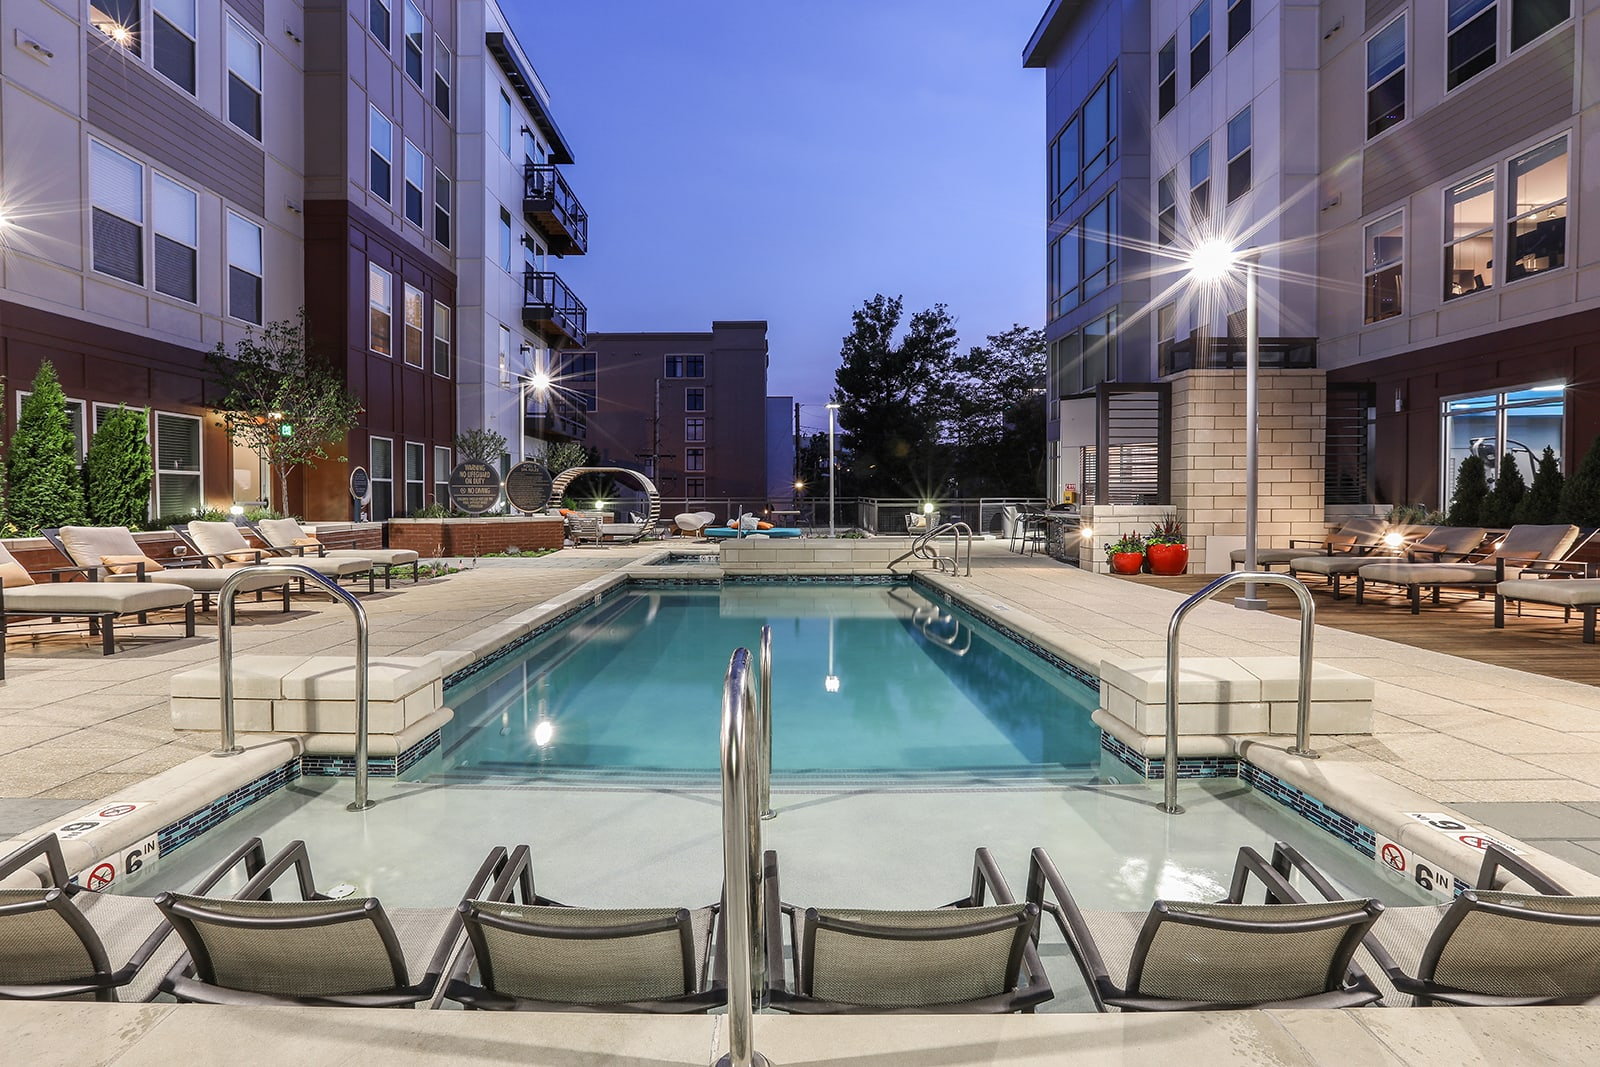 The Heated Salt-Water Pool Is Open Year-Round at Centric LoHi by Windsor, CO, 80211